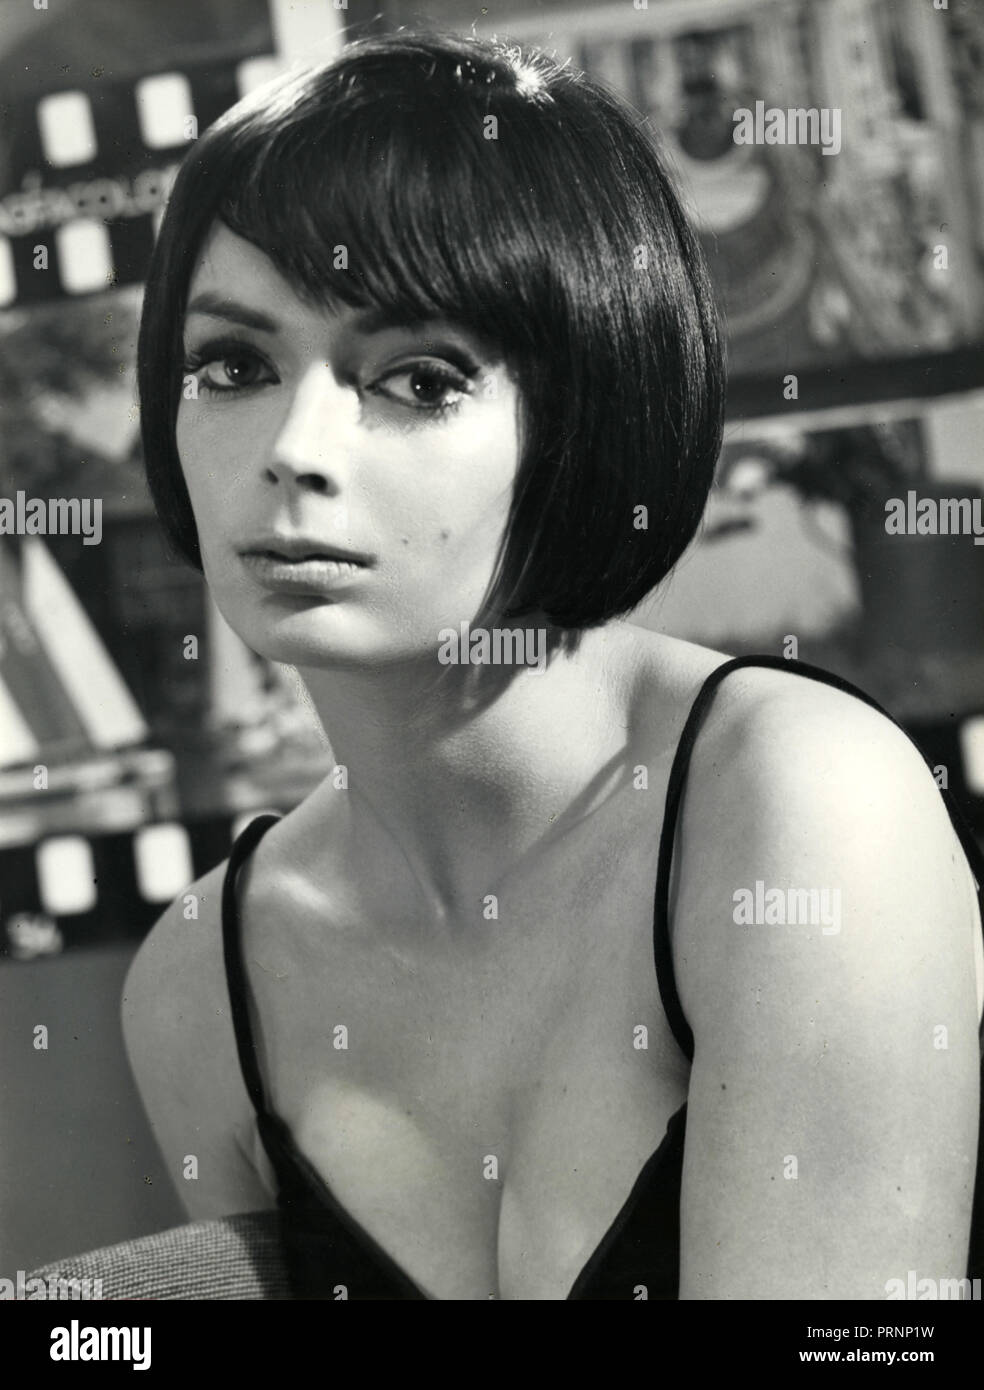 English film actress Barbara Steel, 1960s - Stock Image